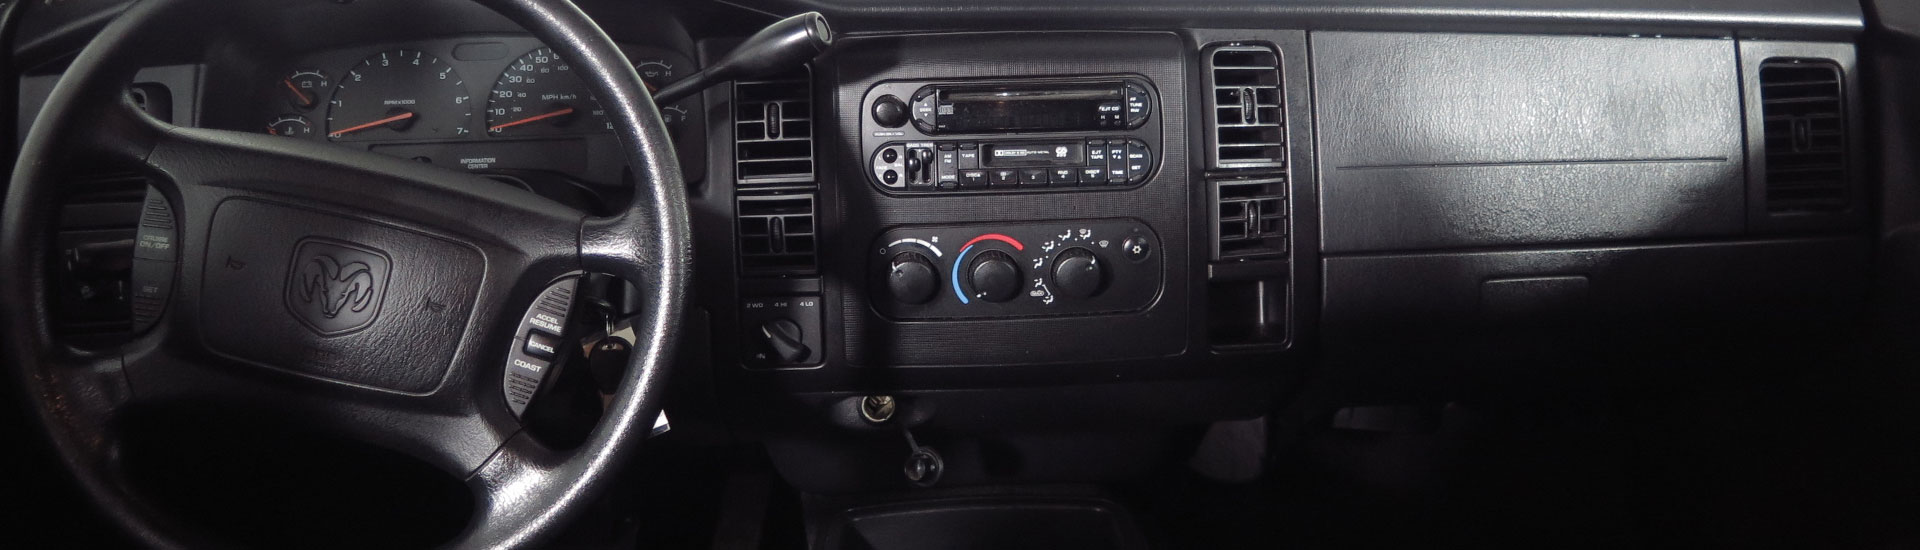 Dodge Dakota Custom Dash Kits